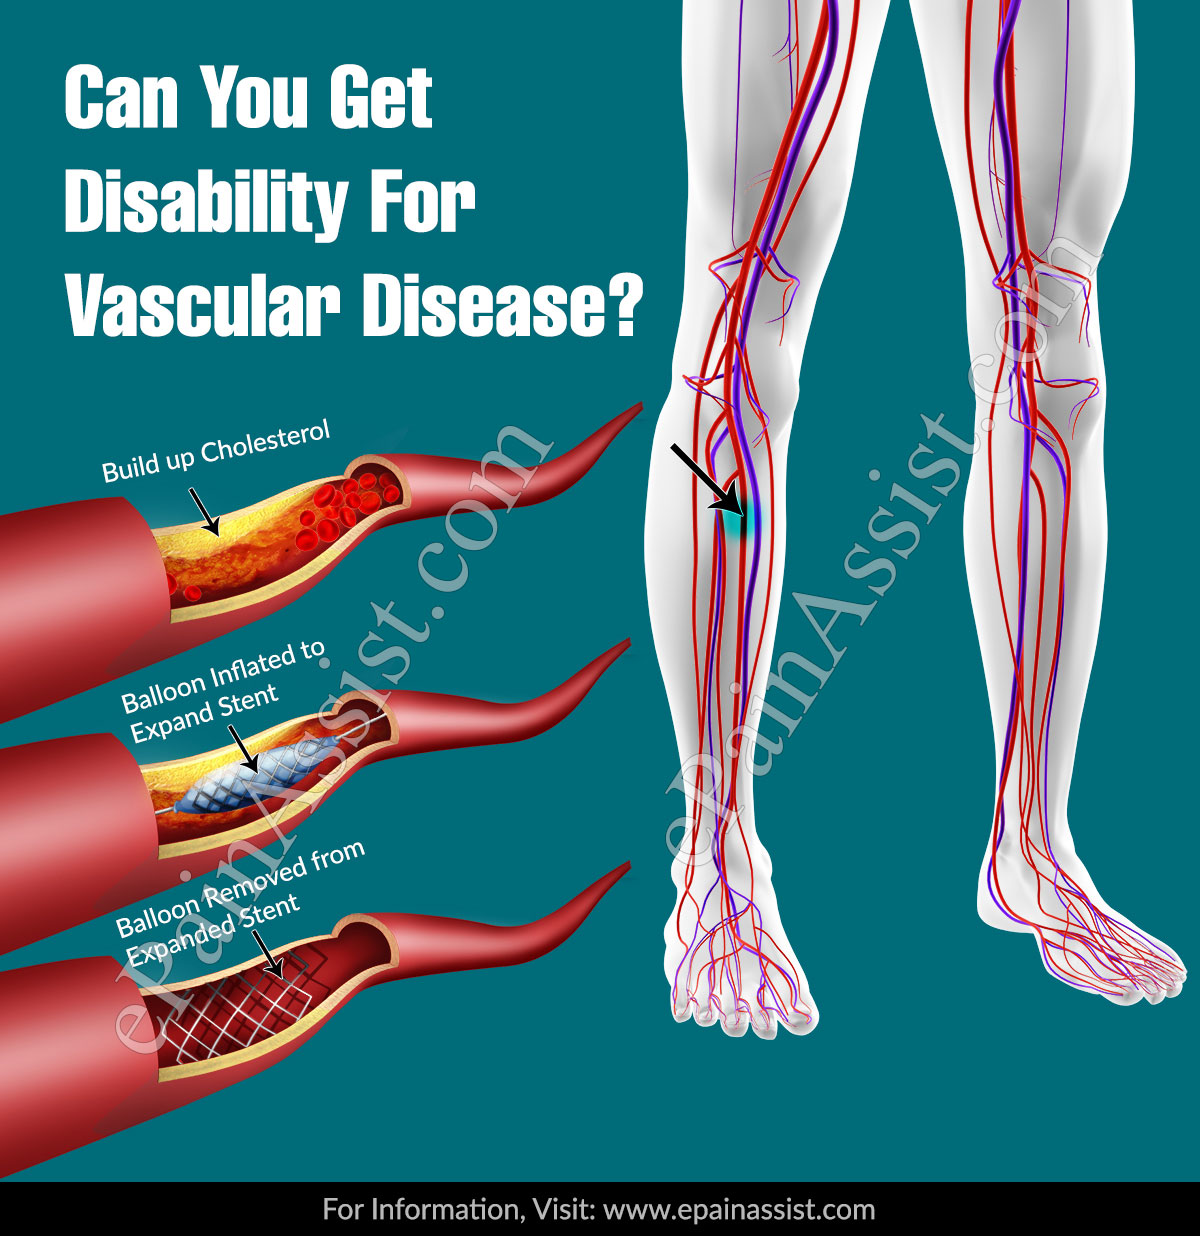 Can You Get Disability For Vascular Disease